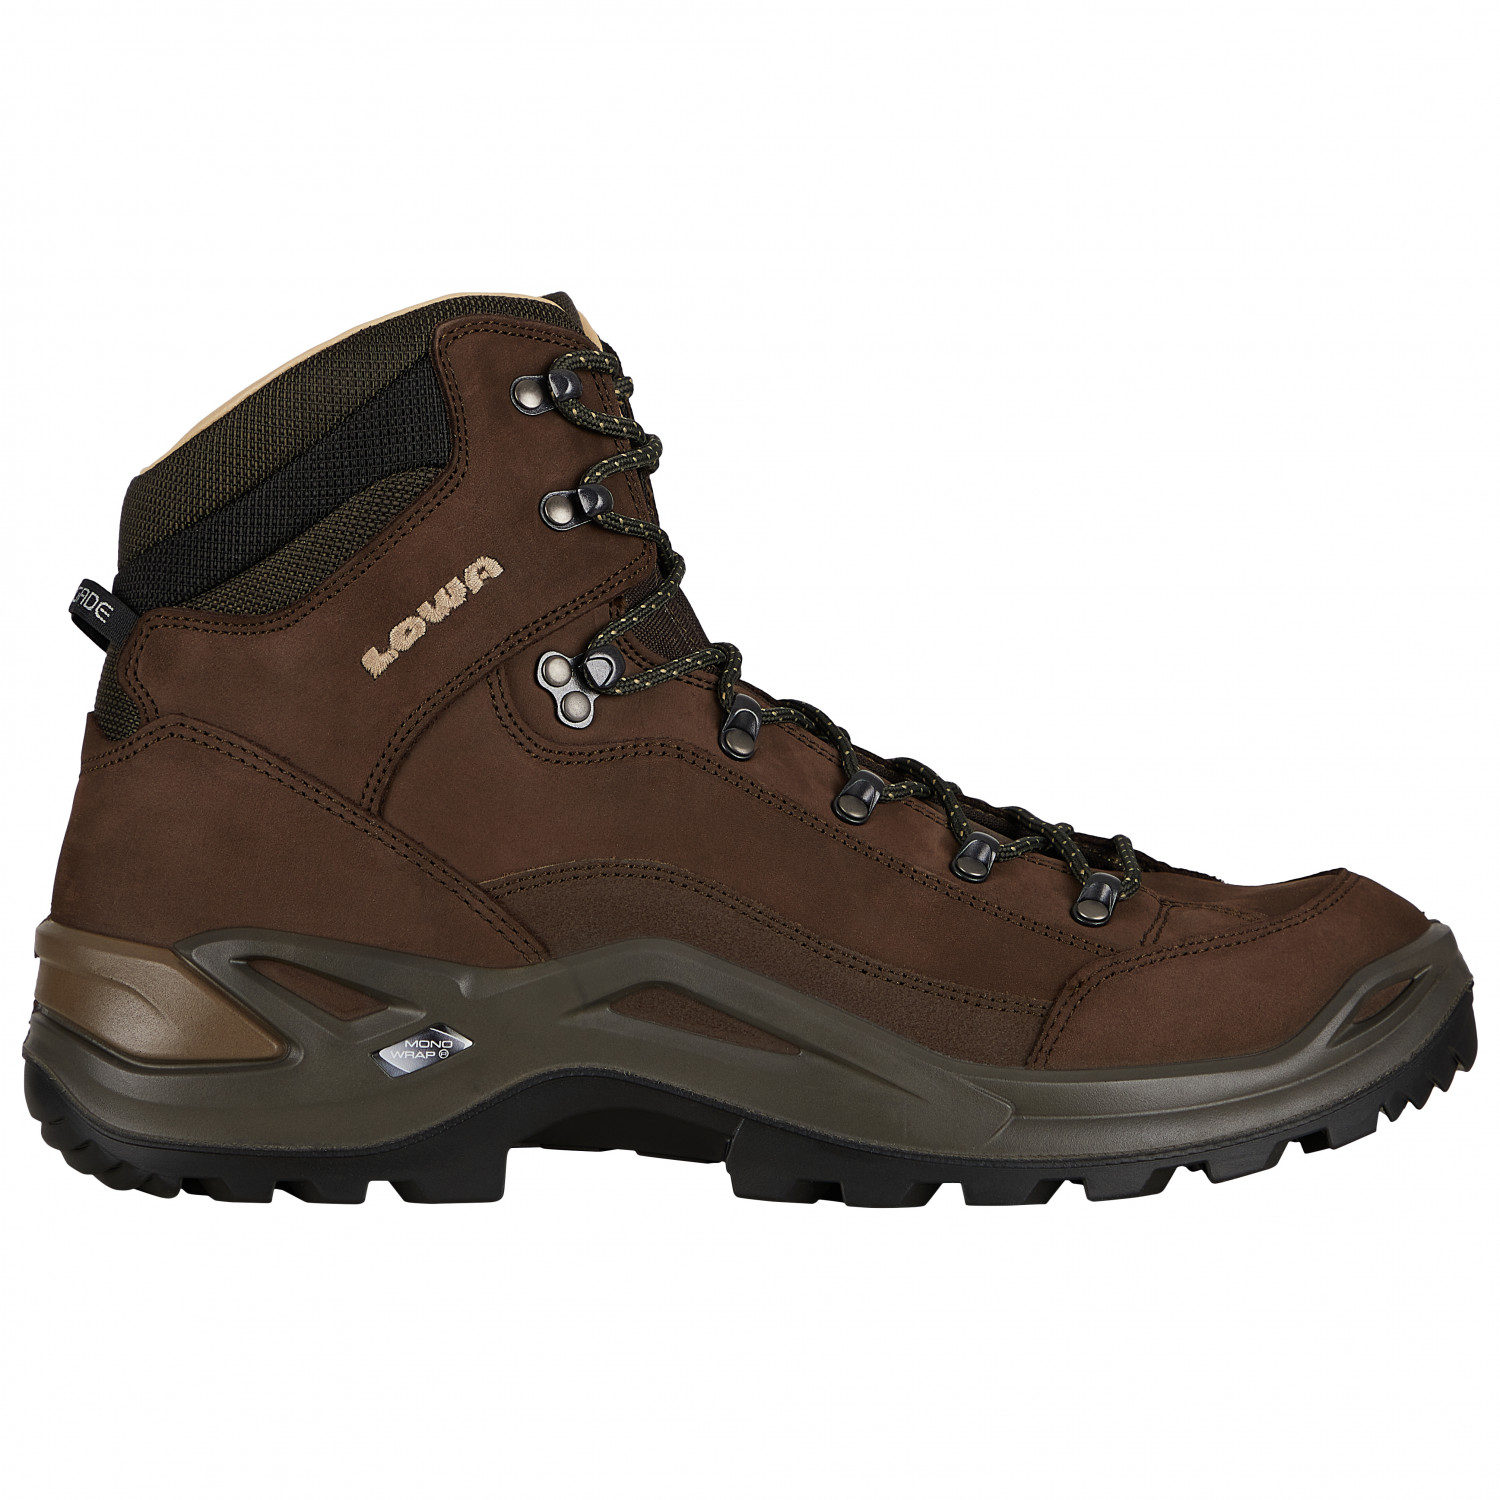 Lowa Renegade LL Mid - Walking Boots Men's | Free UK